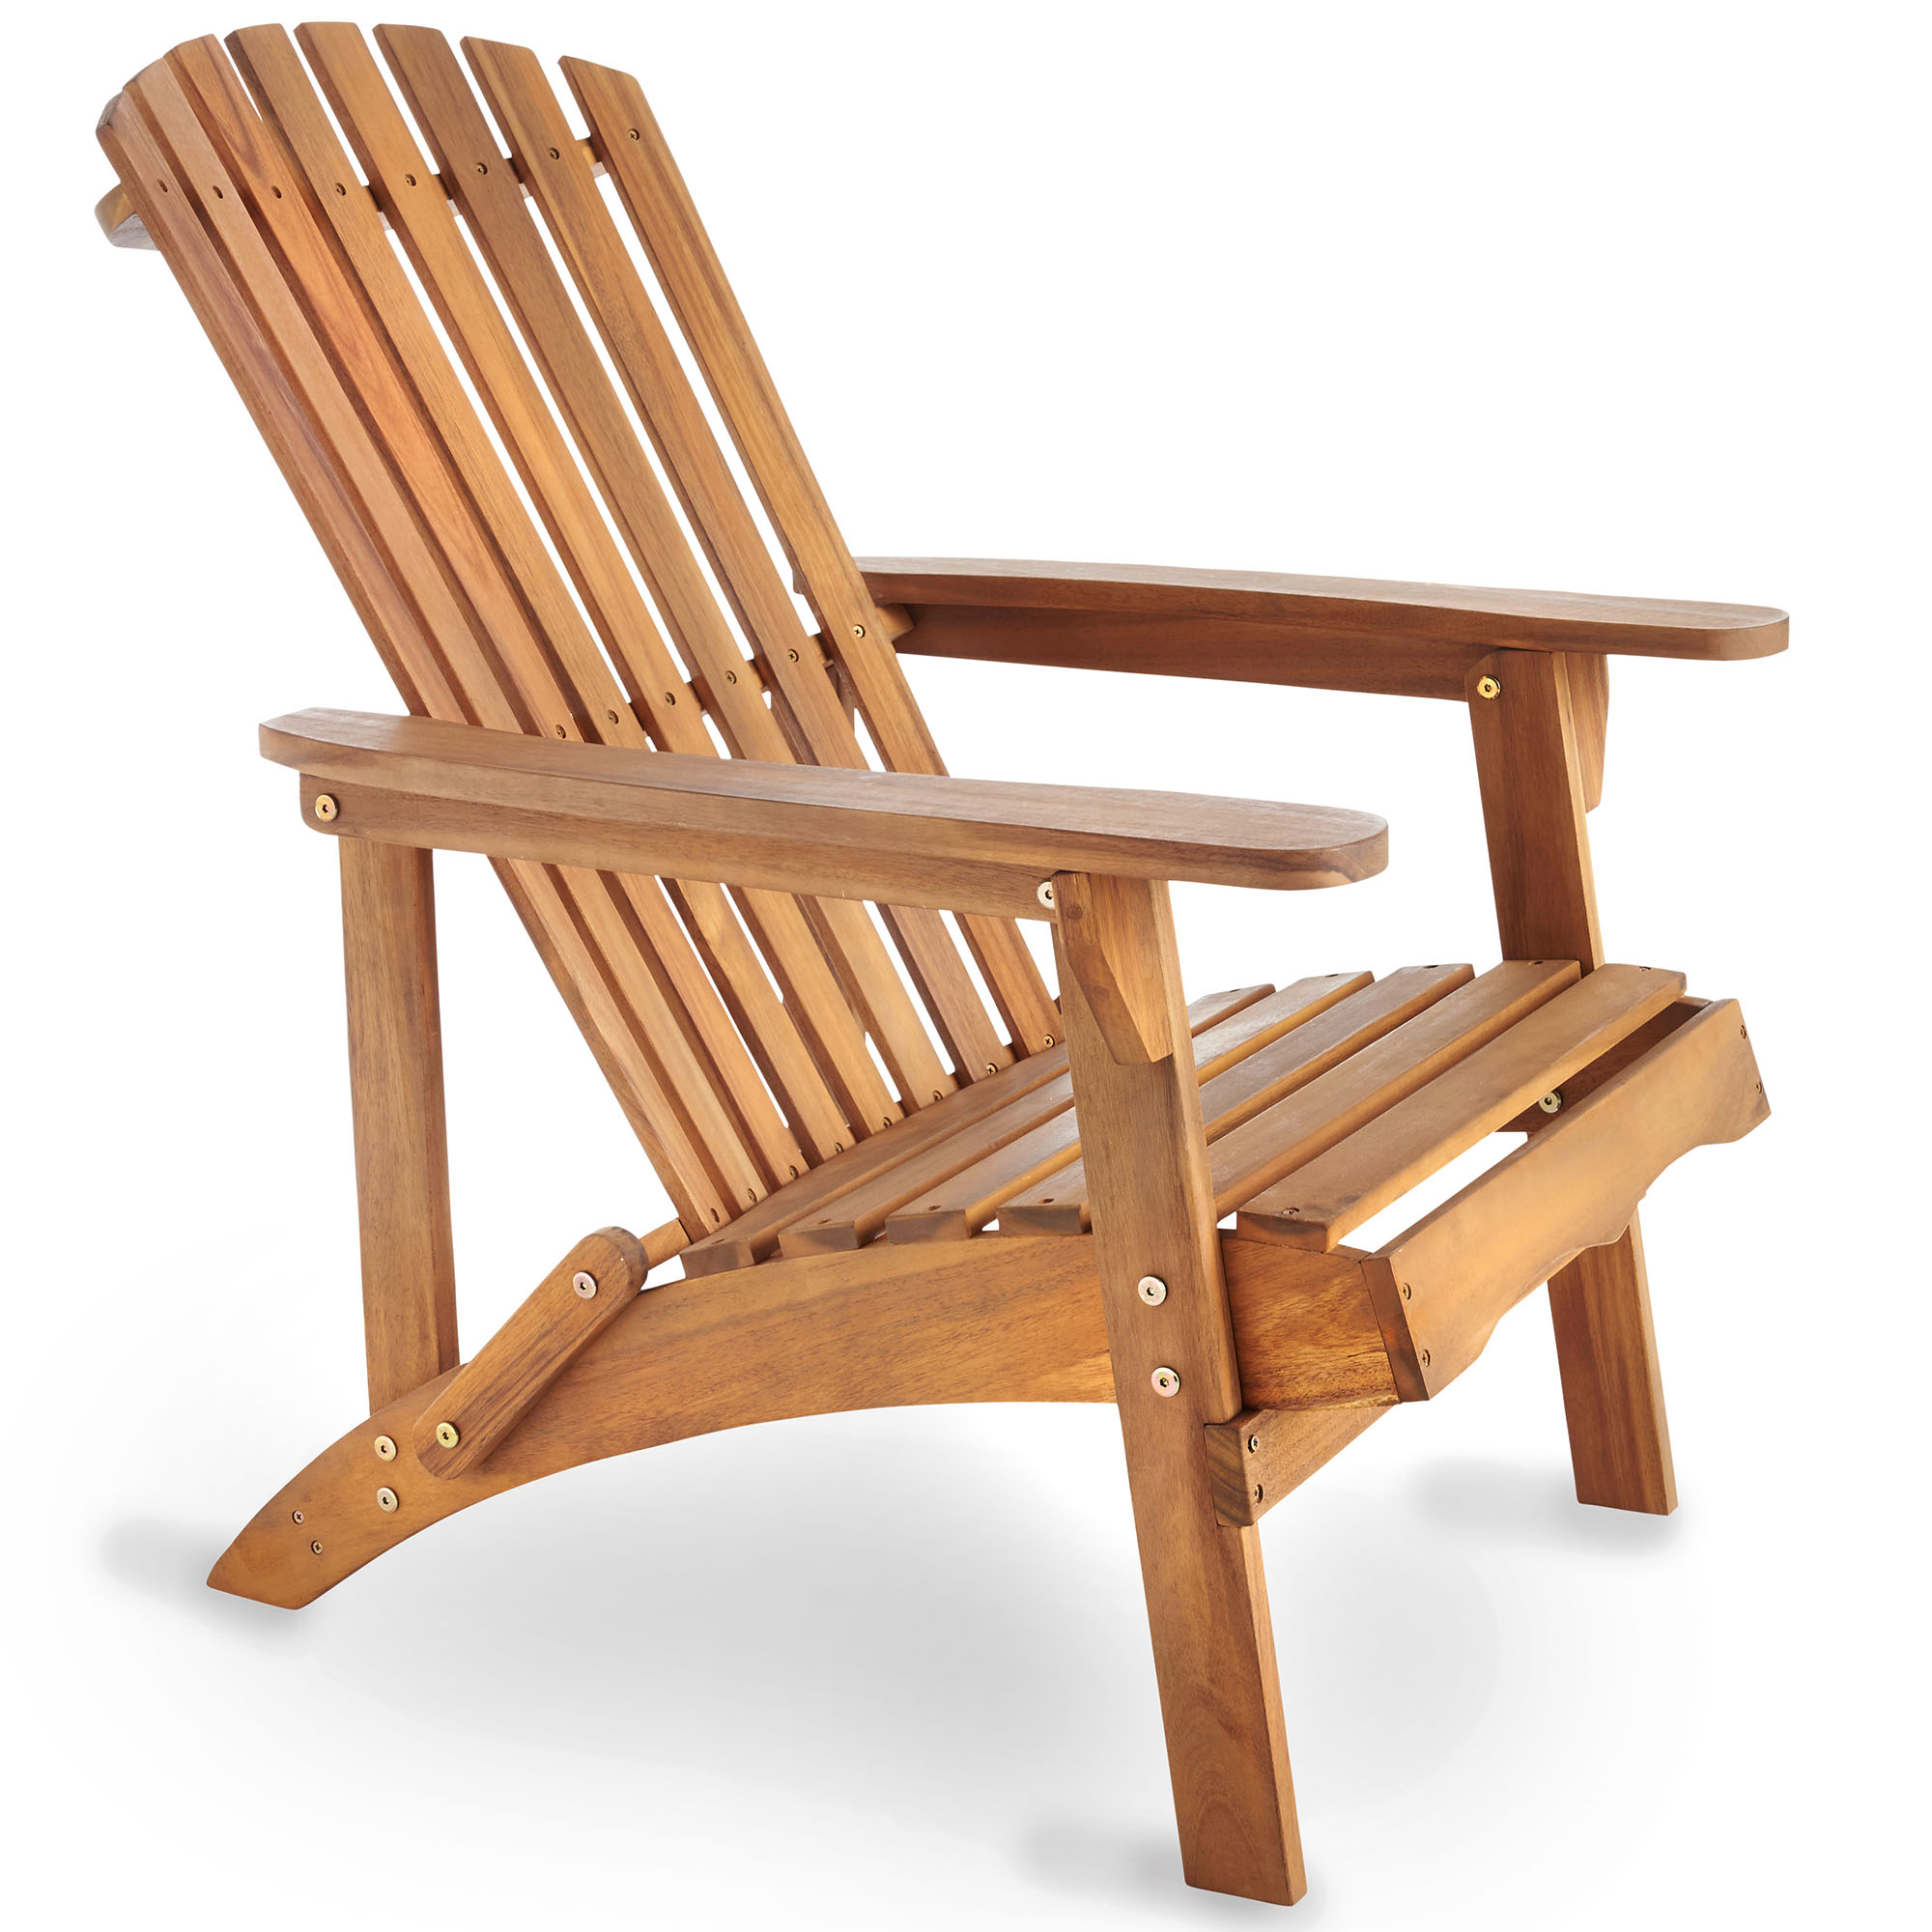 Wooden Garden Chair ~ Vonhaus adirondack chair outdoor garden patio pool balcony